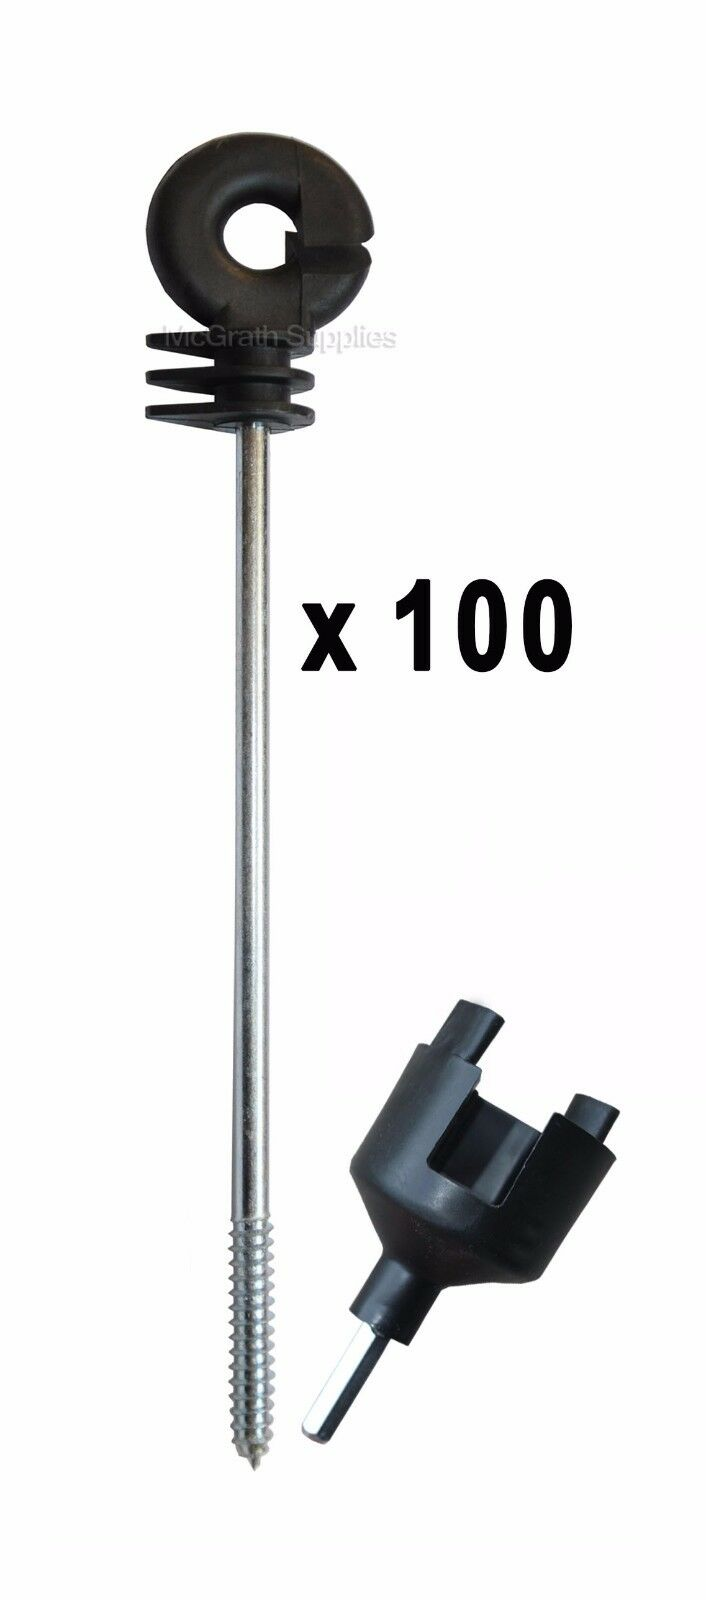 Details about 100 x Electric Fence Distance Long Insulators + Drill Tool